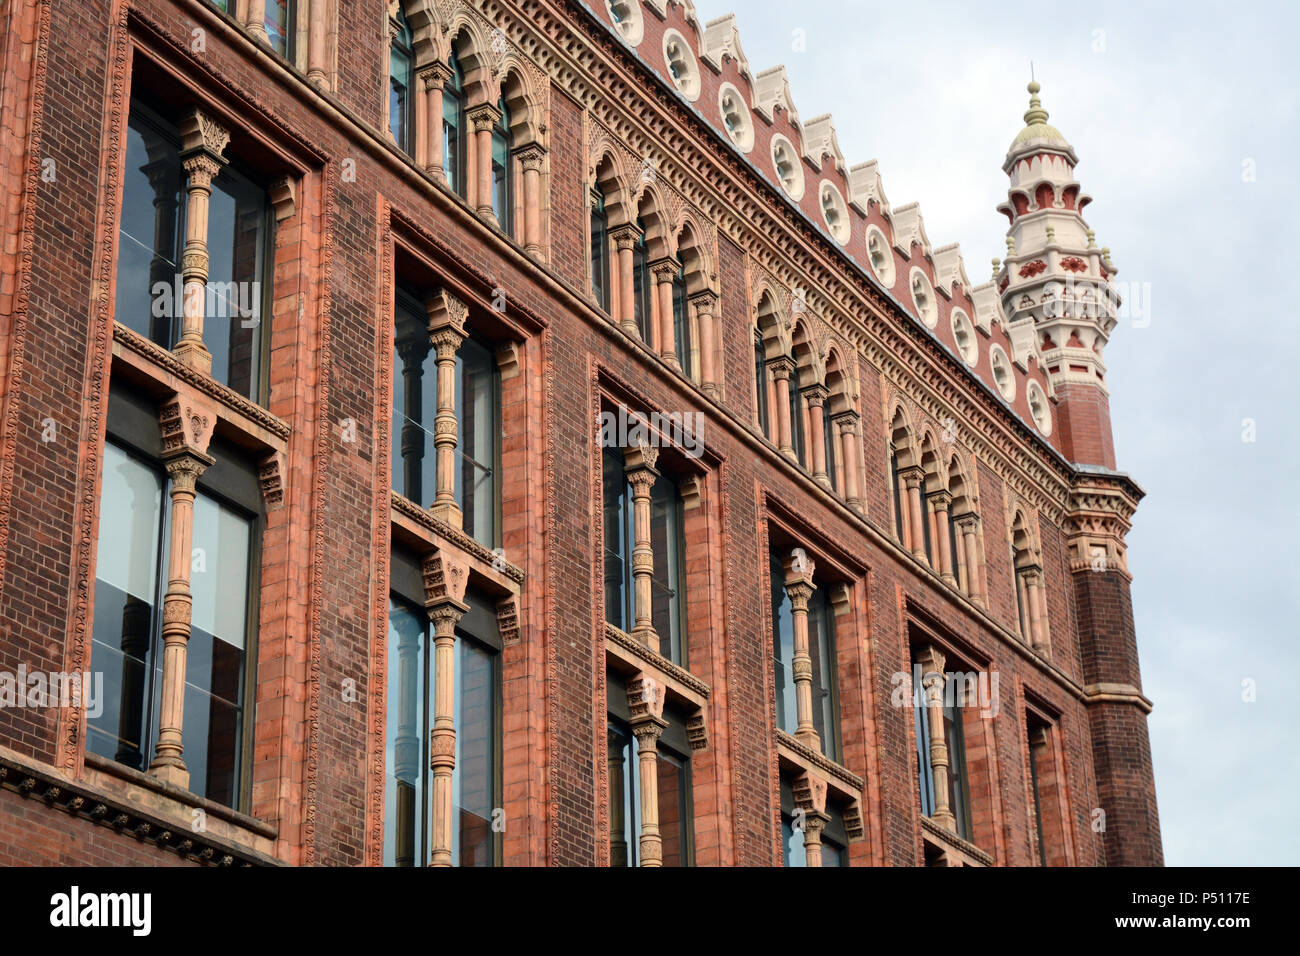 The facade of the historical 19th century St. Paul's House built in the Hispano-Moorish style of architecture, in Leeds, England, United Kingdom. - Stock Image